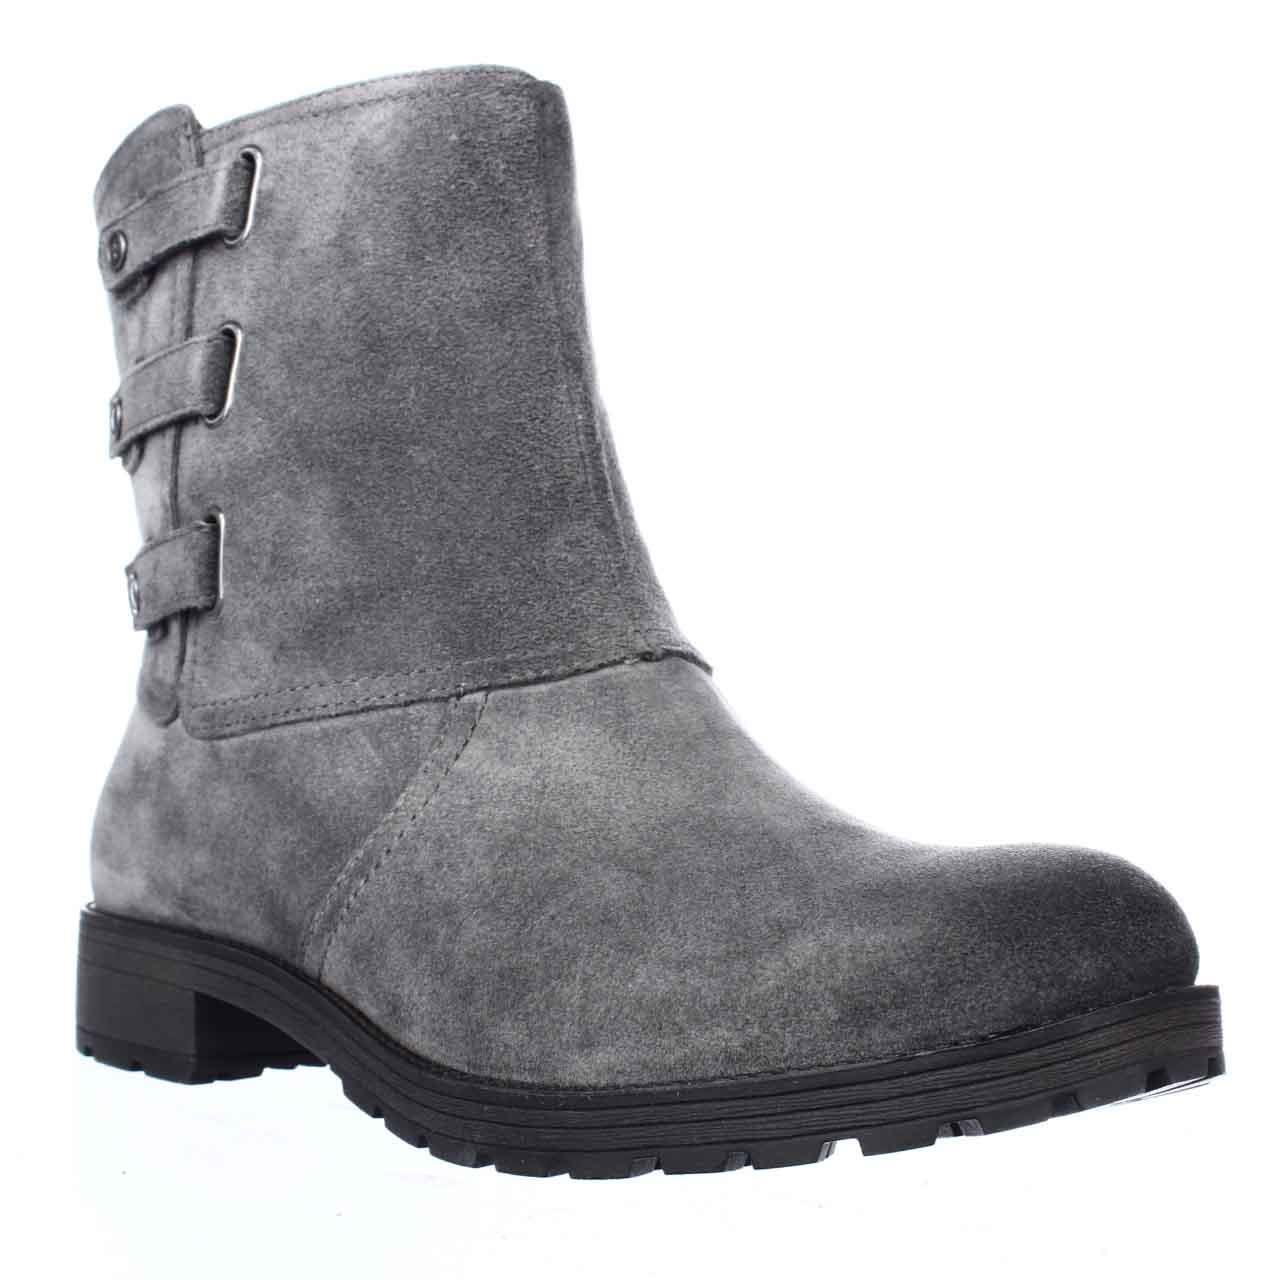 Womens Naturalizer Tynner Triple Side Strap Boots, Grey Suede by Naturalizer